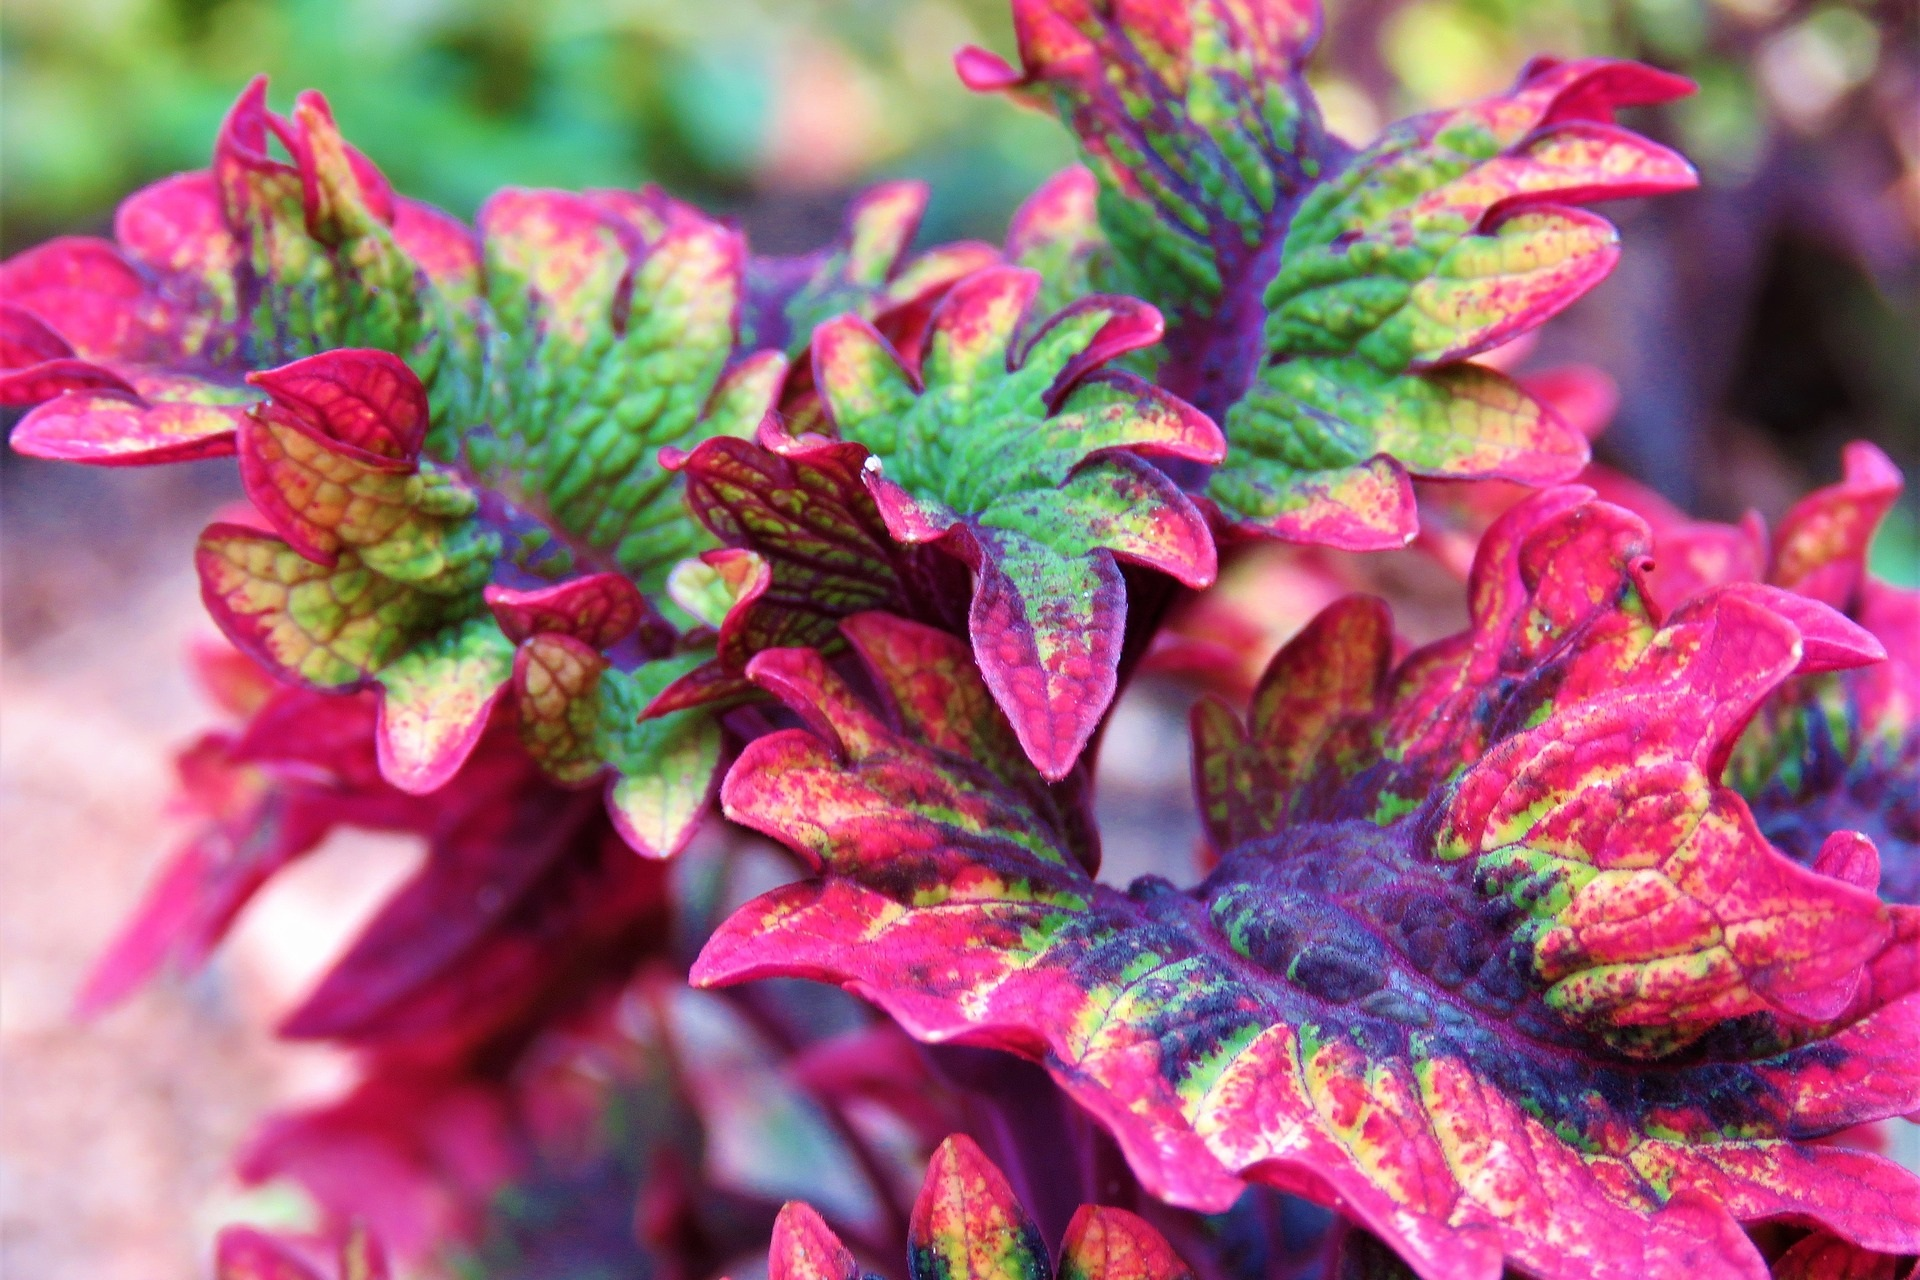 Annual Foliage Plants - Use these plants in your annual beds or container gardens to add color and texture beyond just flowers.